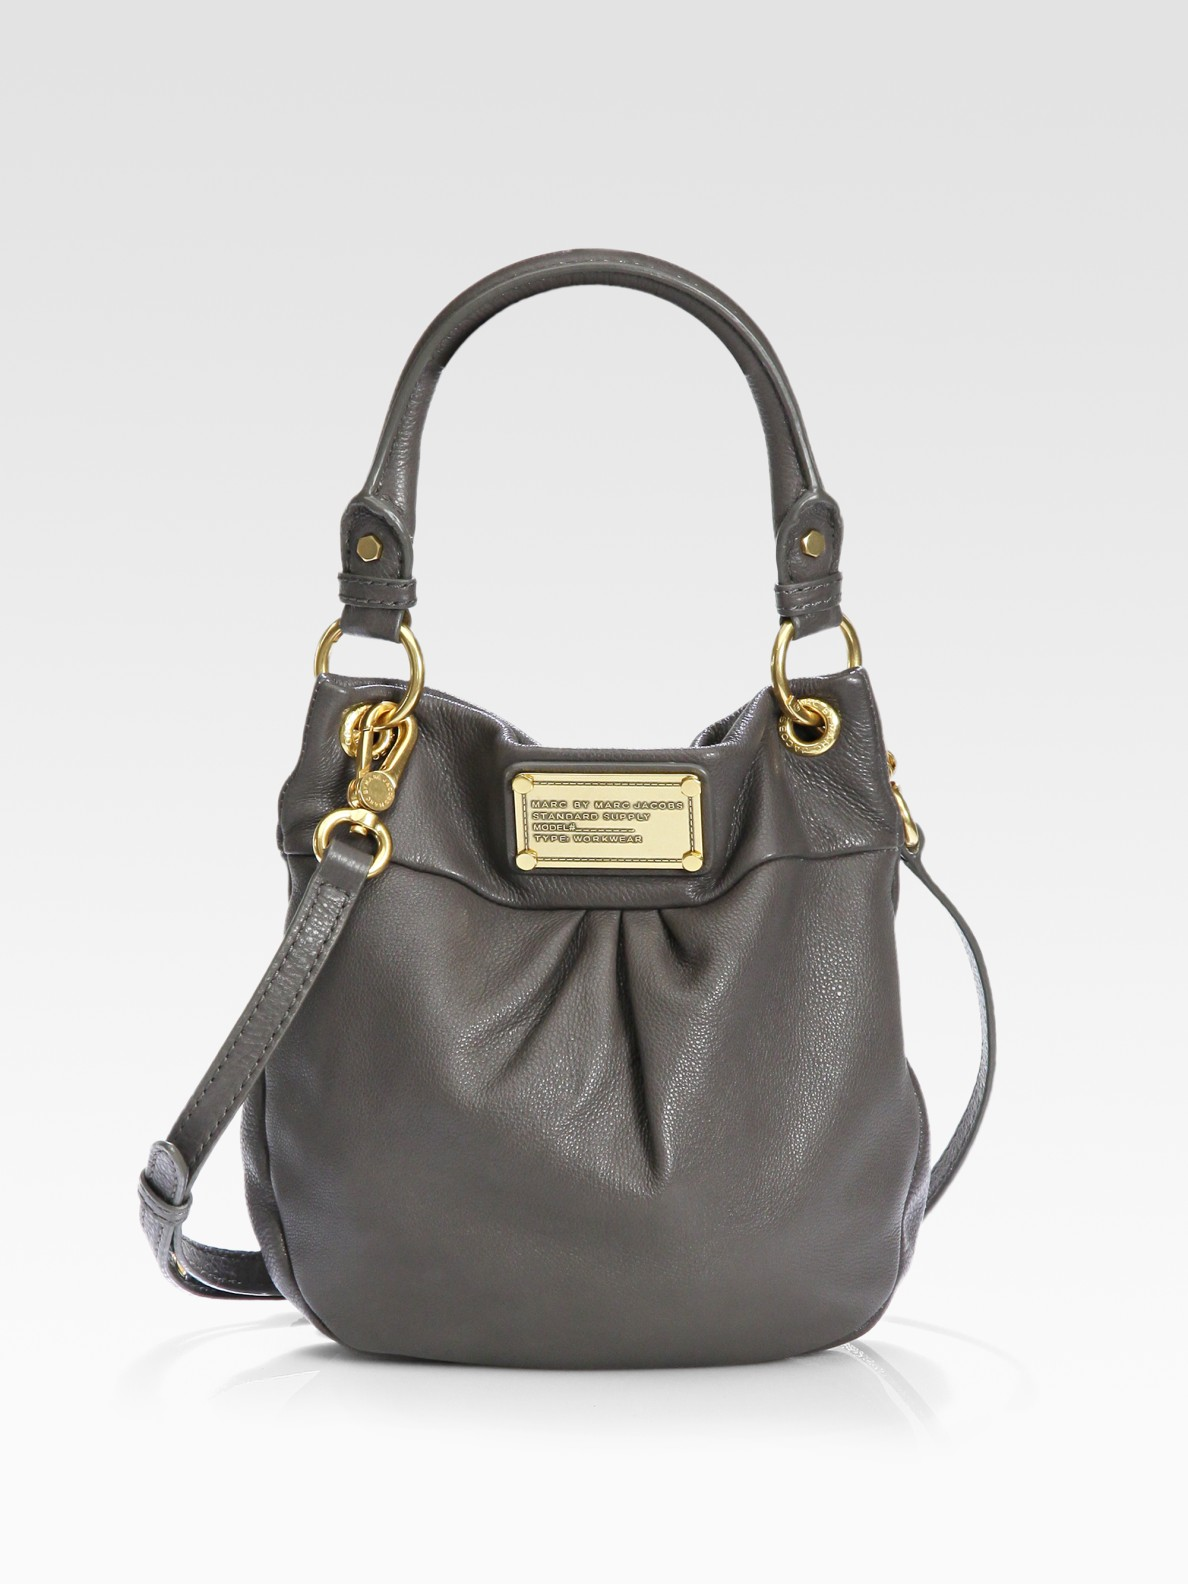 877e8d538fa Marc By Marc Jacobs Classic Q Mini Hillier Hobo Bag in Black - Lyst